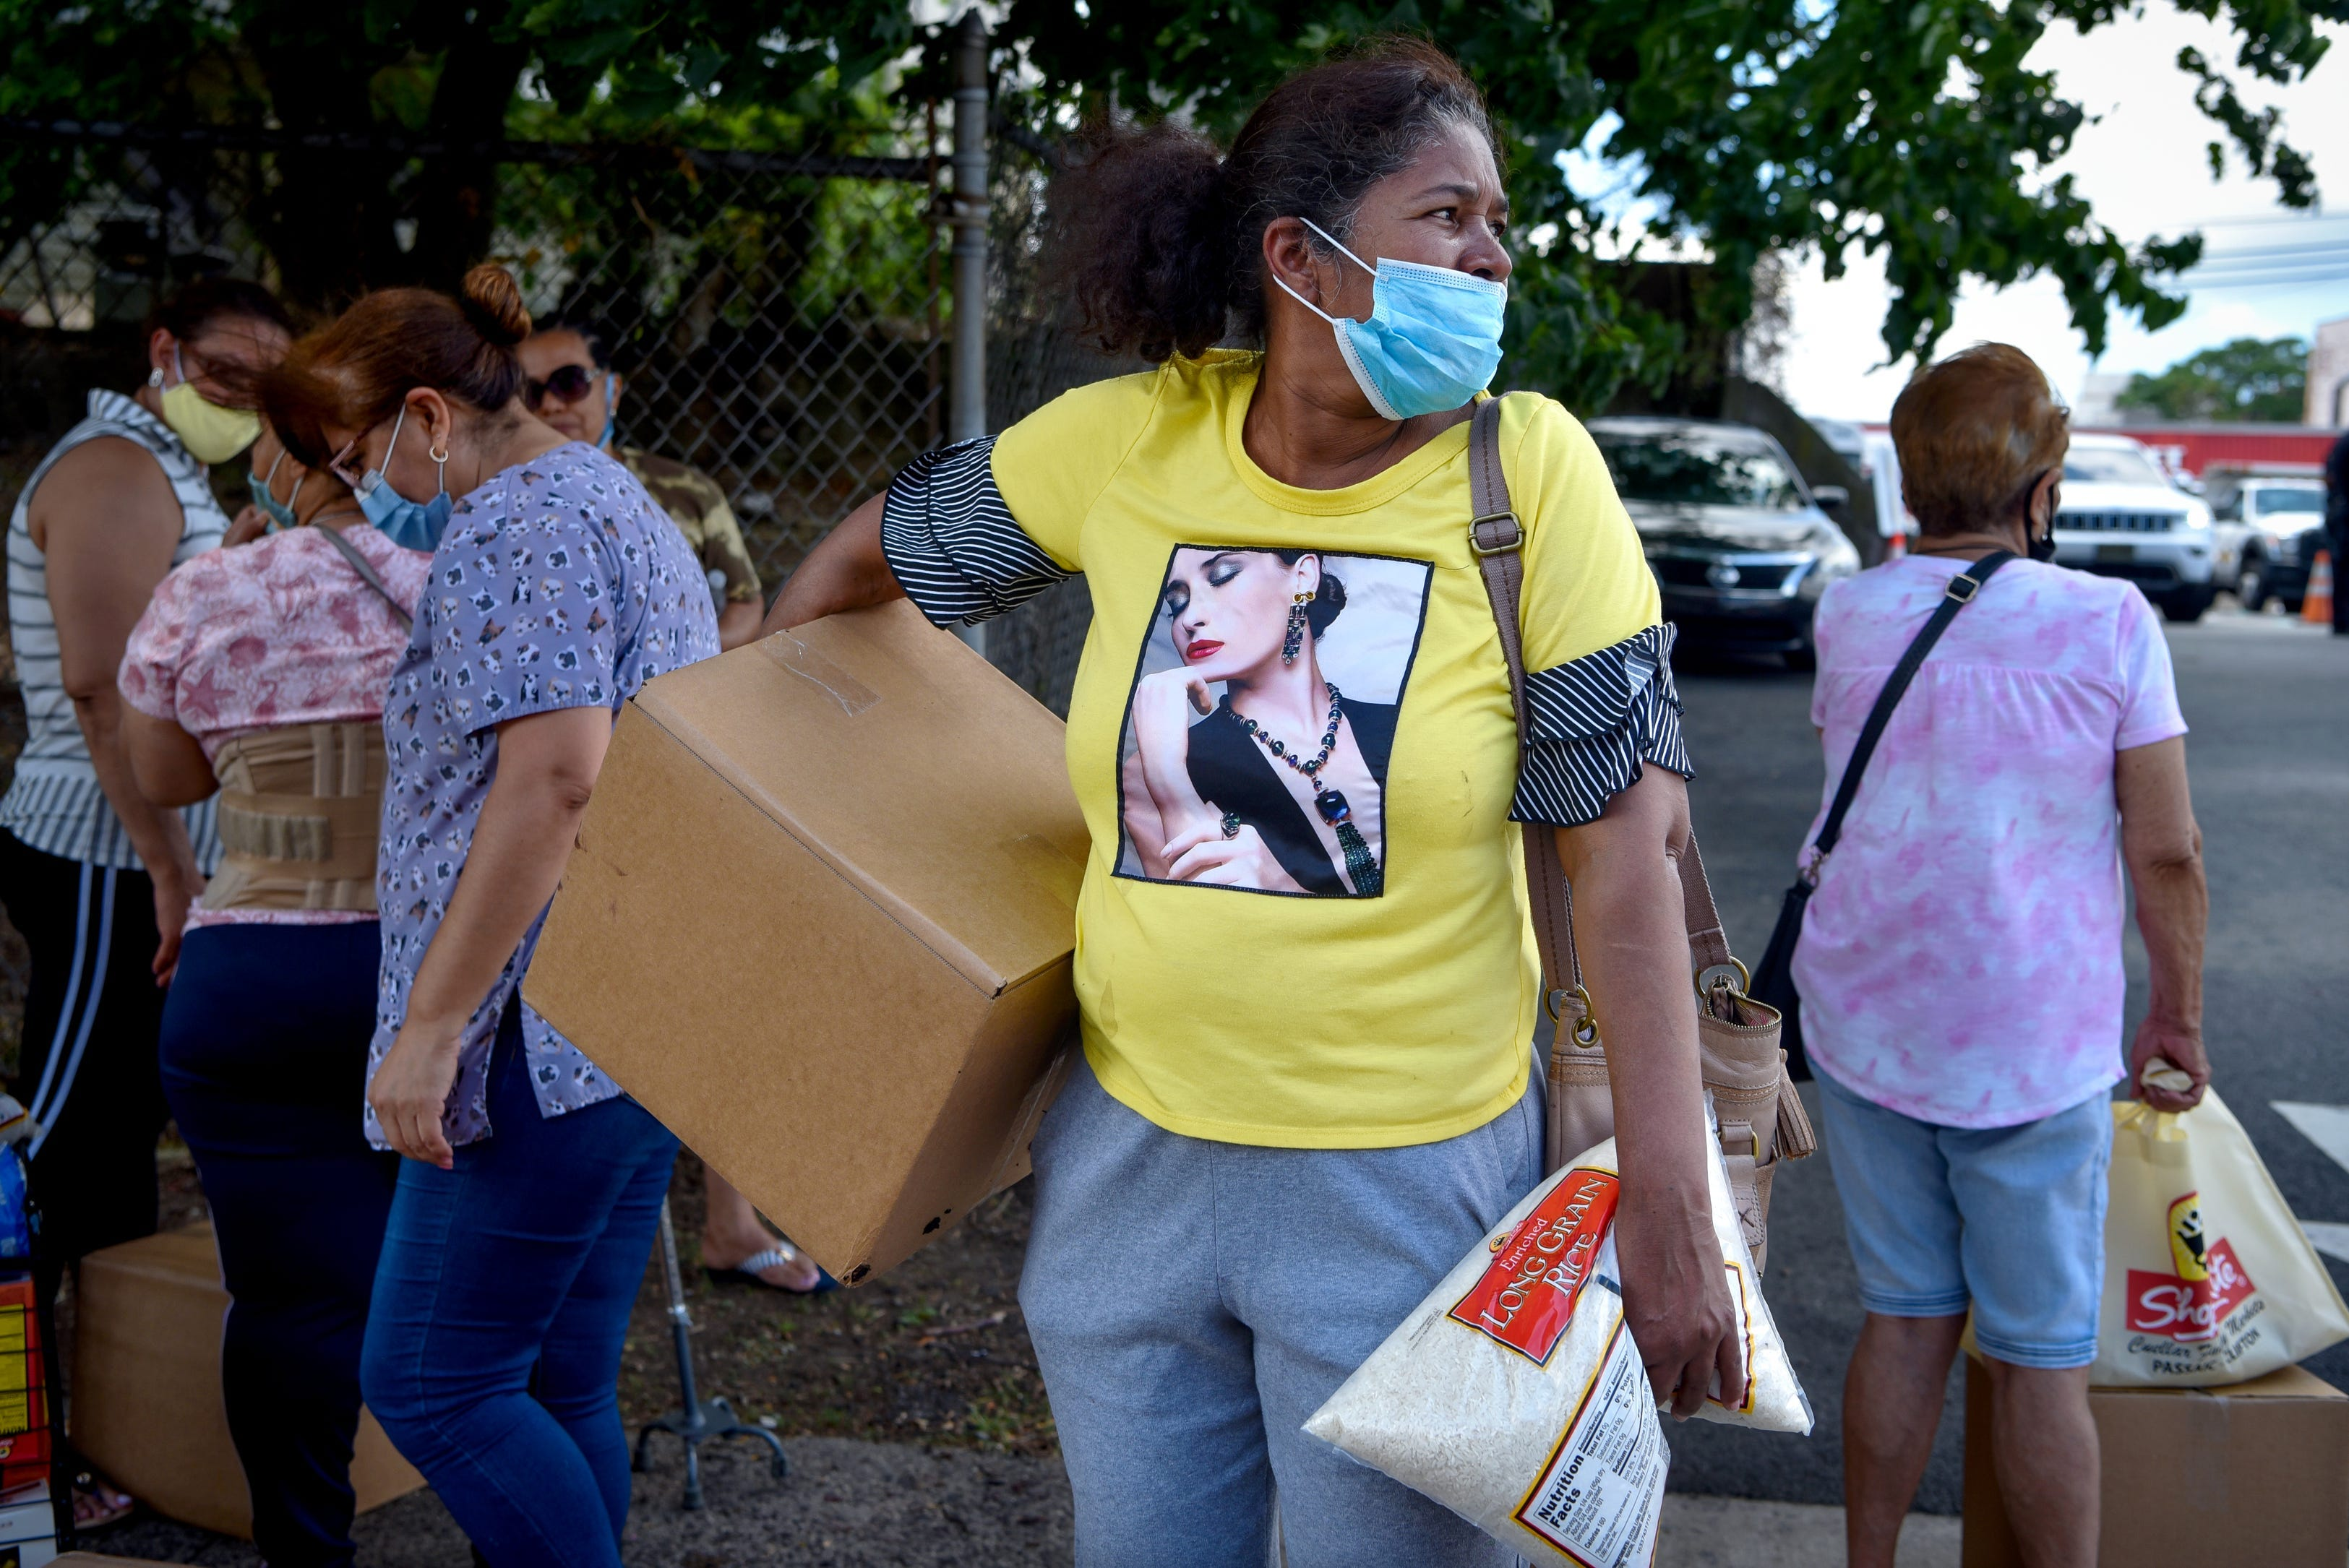 Residents pick up food boxes in Passaic, New Jersey, on June 29 after the county secured more than $87 million in coronavirus relief from the federal government.